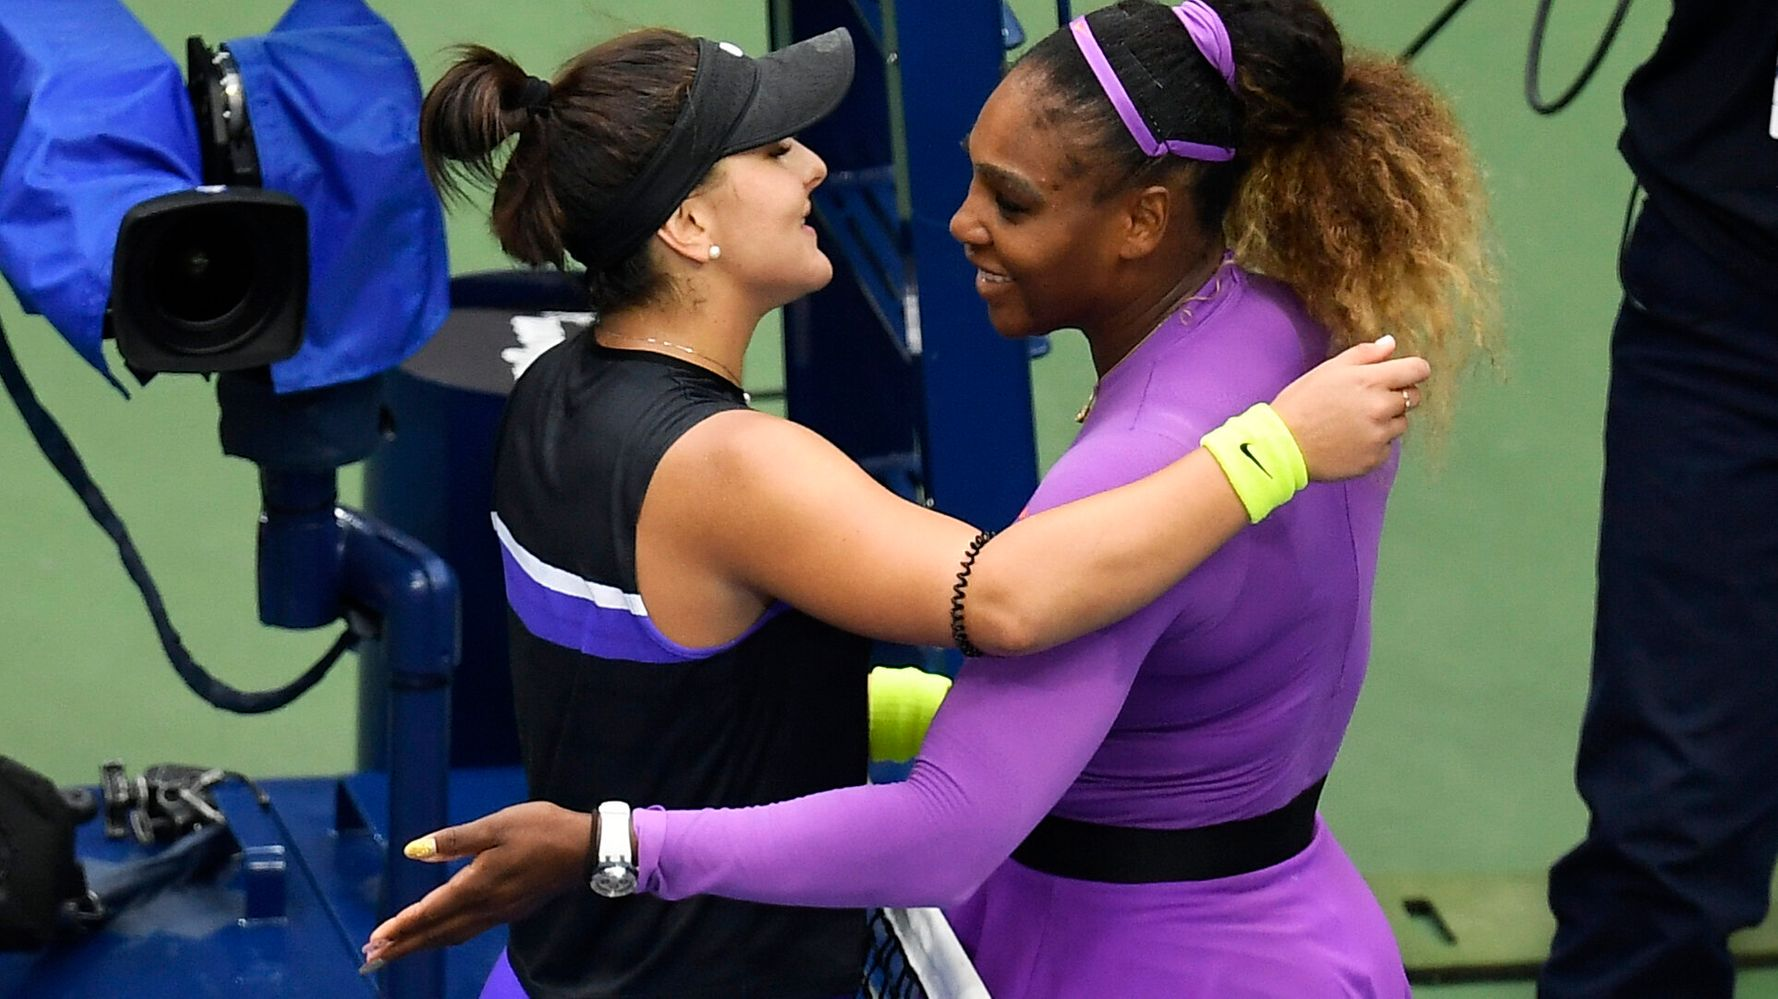 Westlake Legal Group 5d742cab2300002302512749 Serena Williams Misses Out On History, Falls To 19-Year-Old Bianca Andreescu In US Open Final